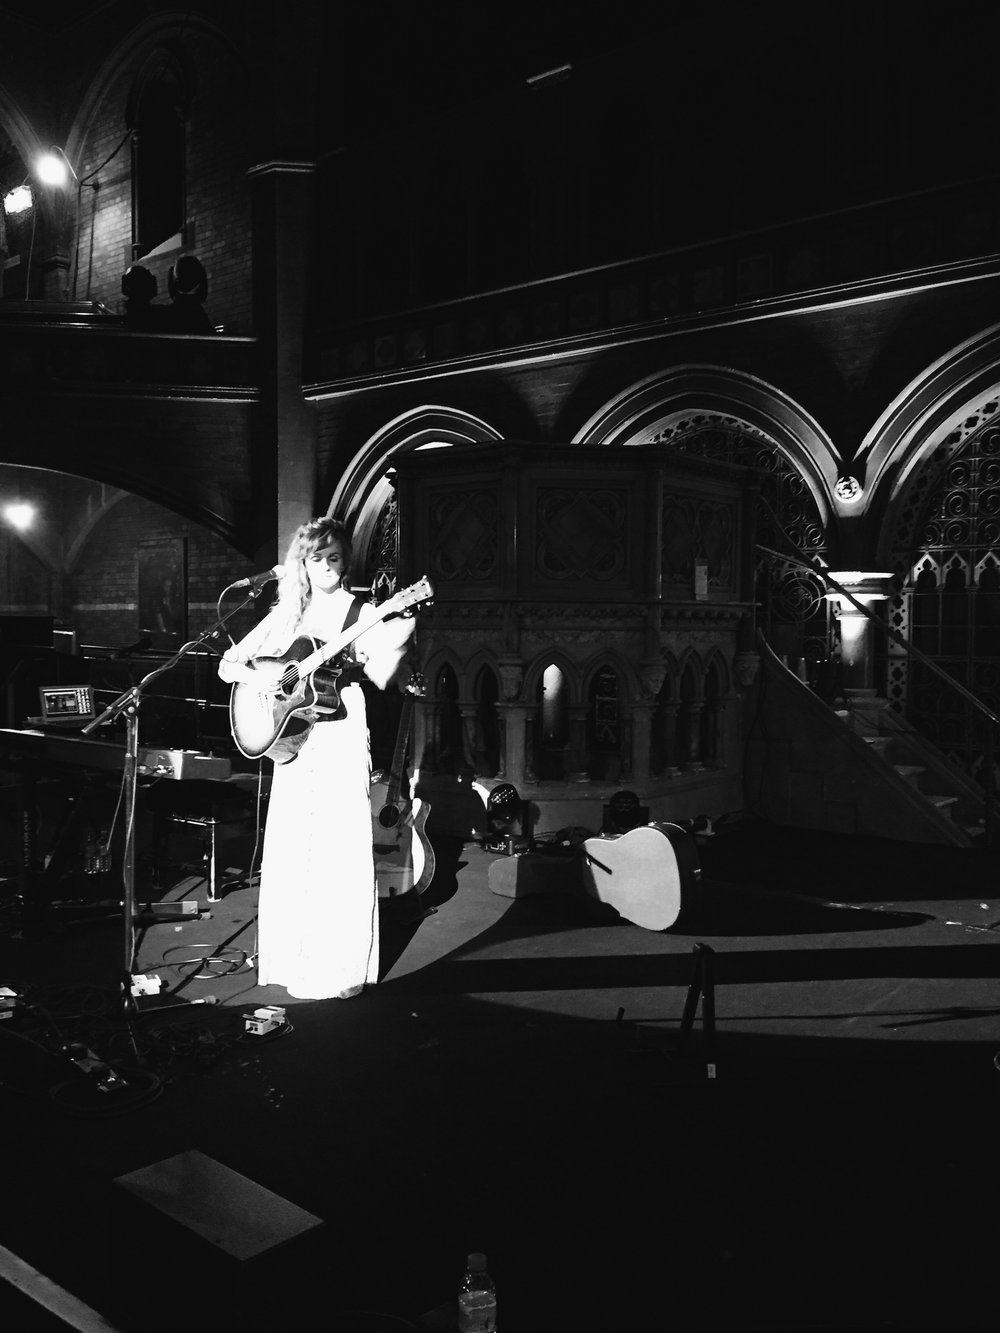 Copy of Copy of Union Chapel, London 2016